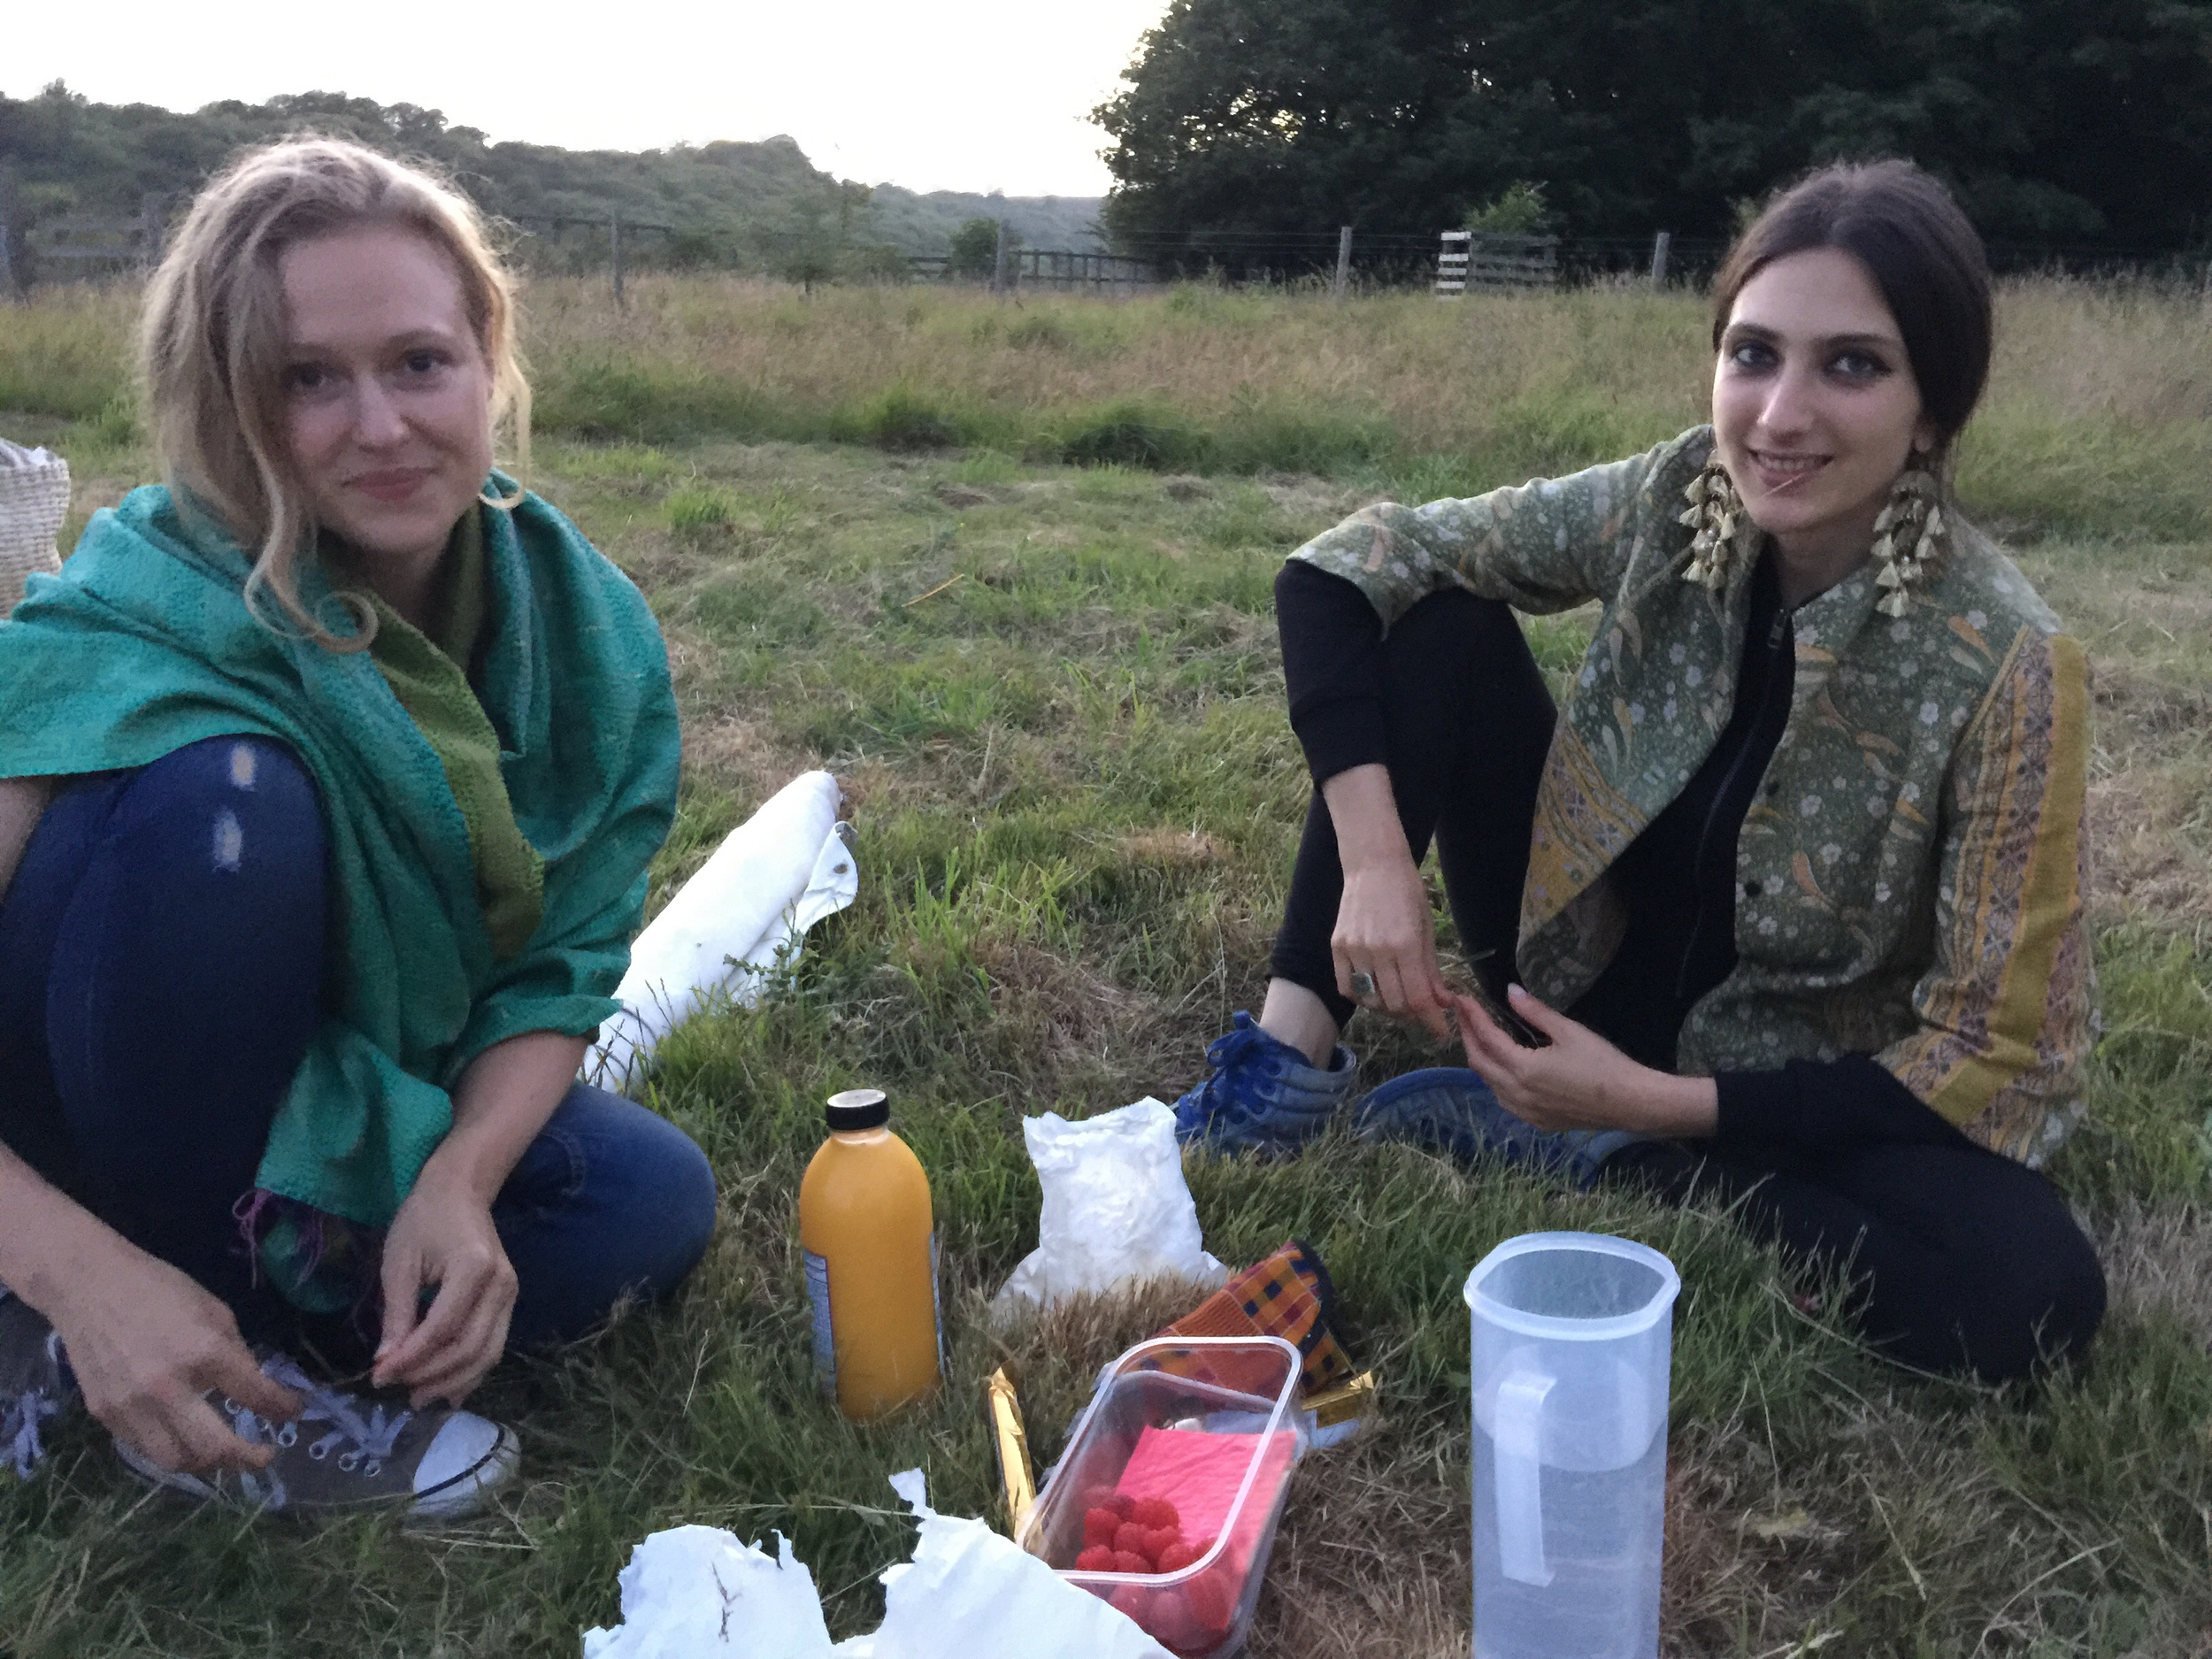 Natropathy food team Dione and Natalie  green-camp.uk/naturopathy